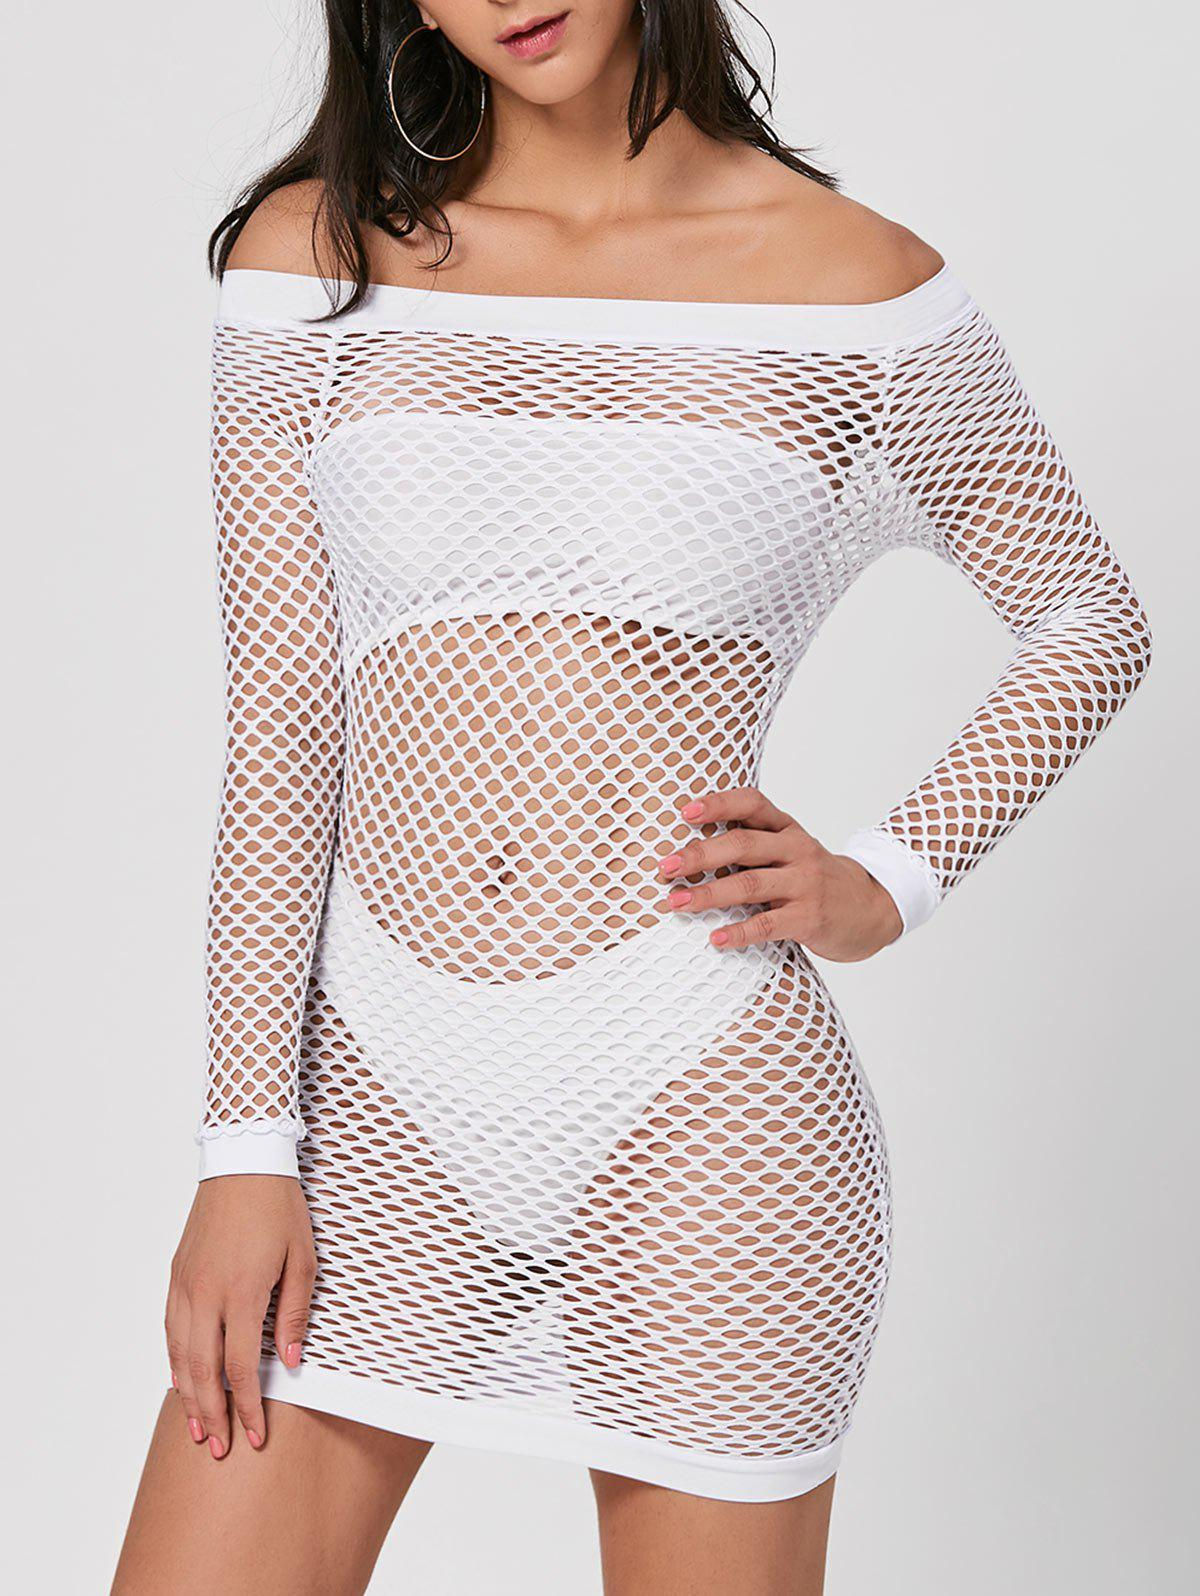 Long Sleeve Openwork Sheer Dress - WHITE M